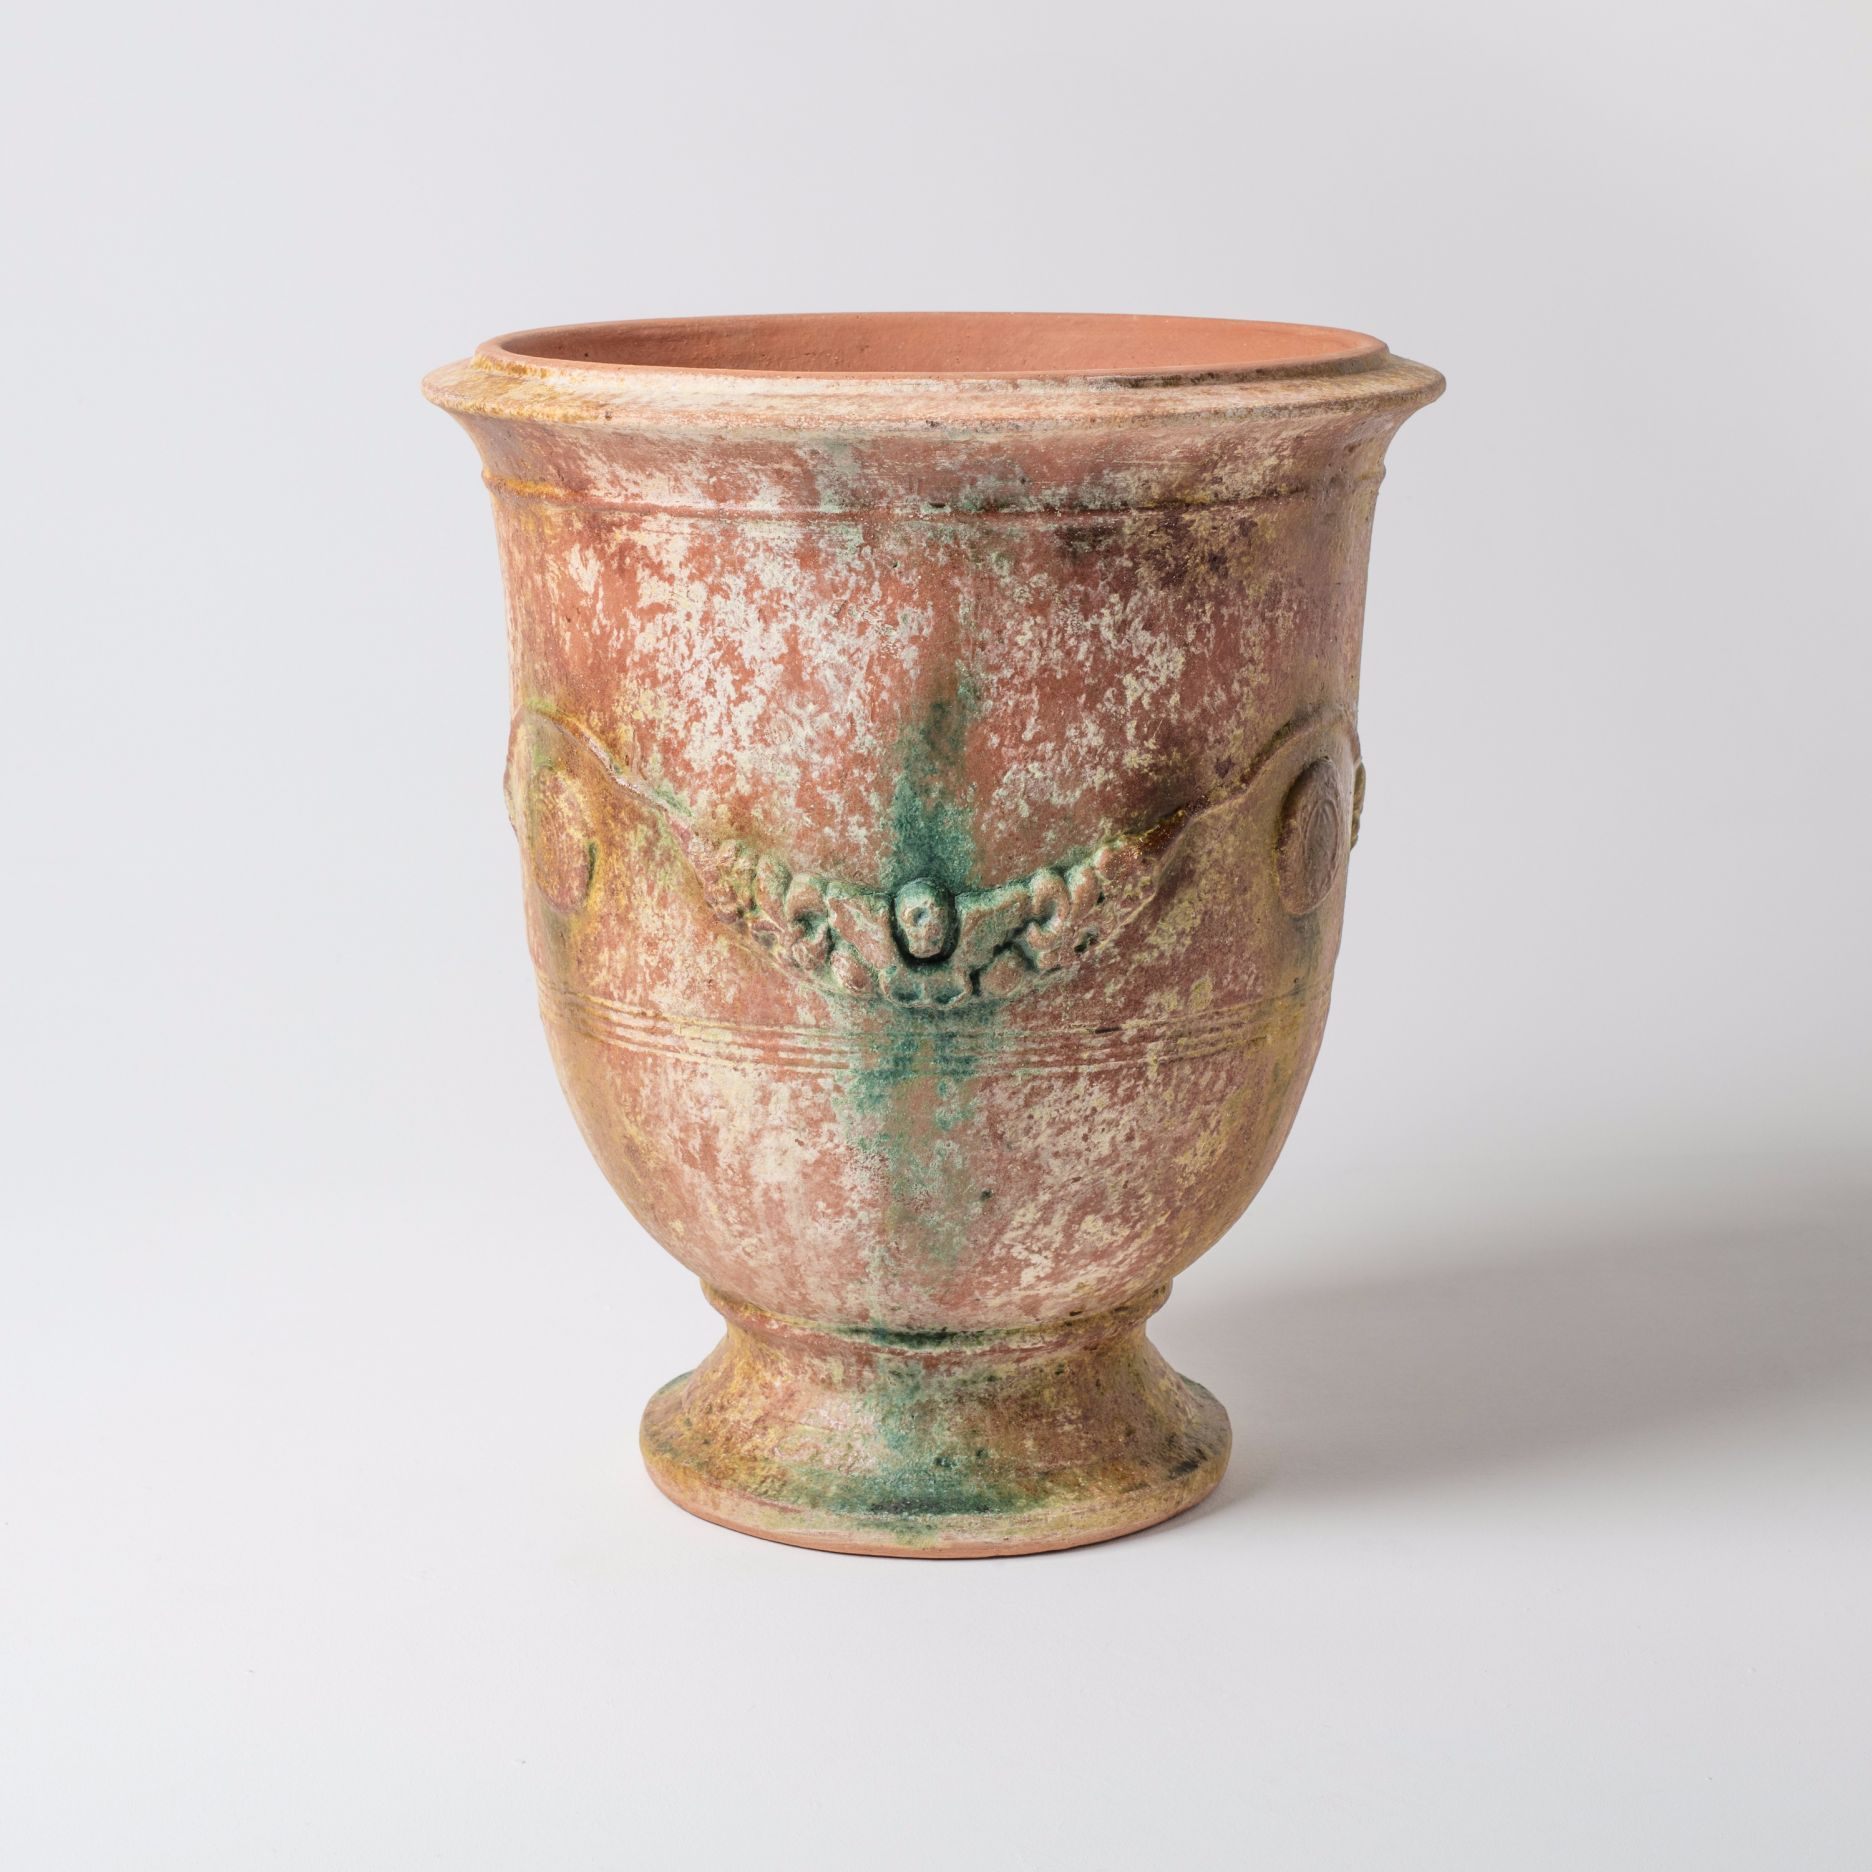 Find Beautiful Ampholia Poterie Anduze Vase Large And Aged Terracotta